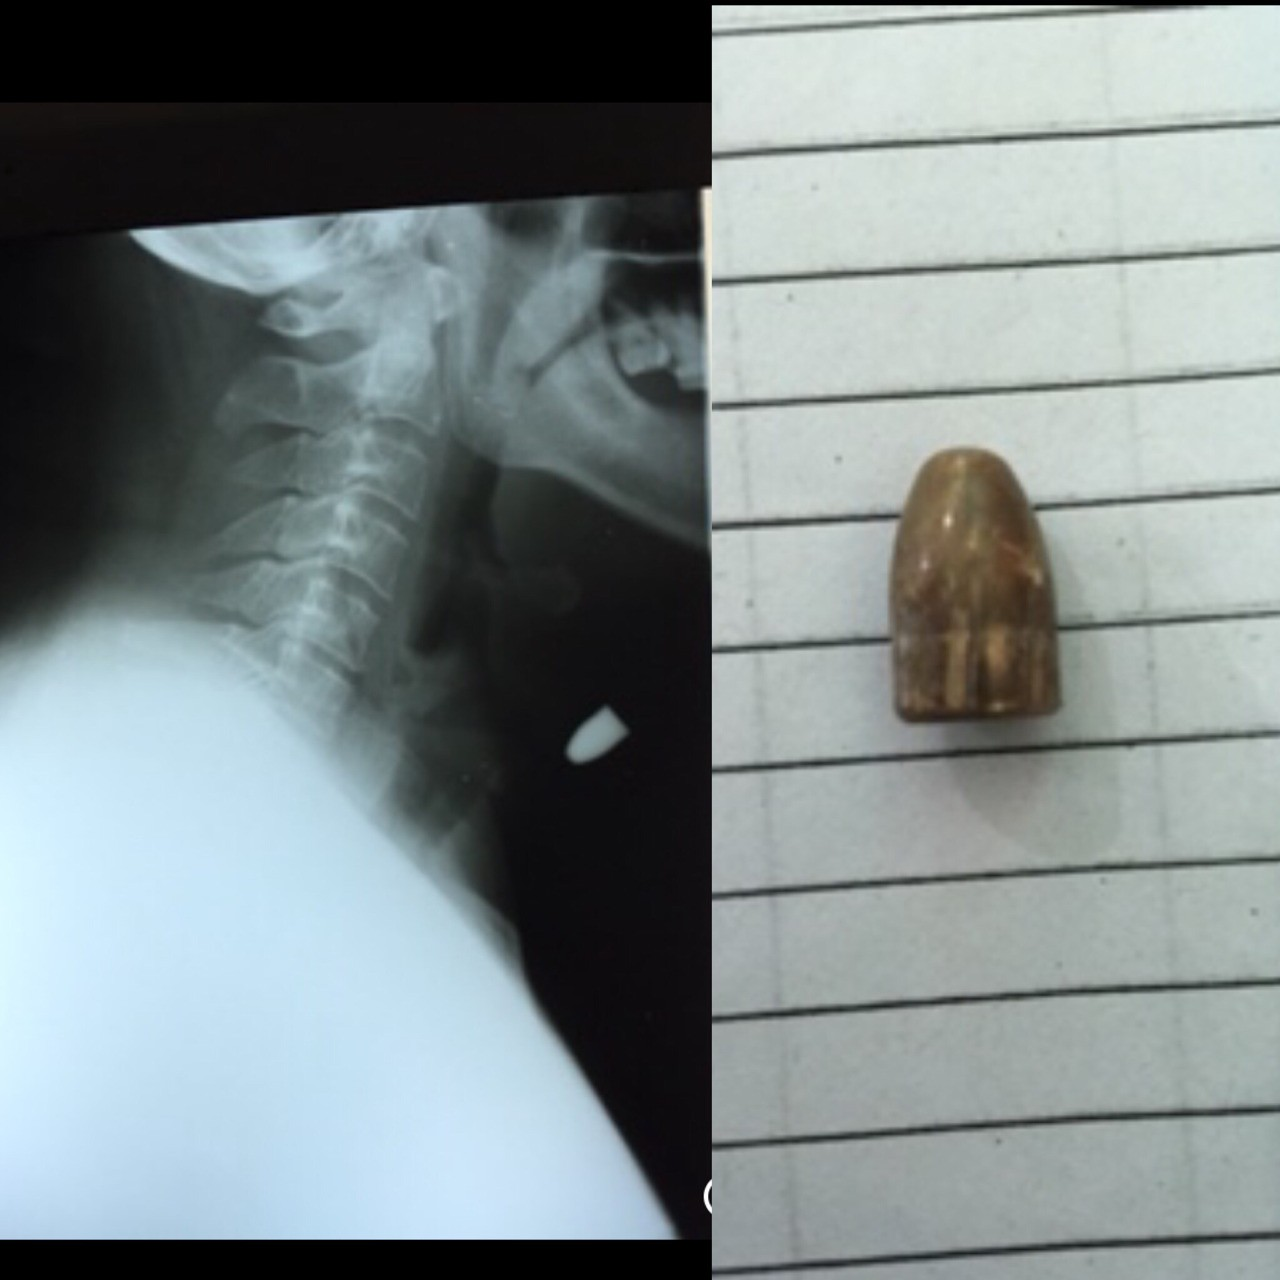 .45 cal FMJ slug anterior to the larynx. Trajectory was from left posterior shoulder to the anterior neck. Bulletin slug was palpable on the skin. My patient lived to tell his story.